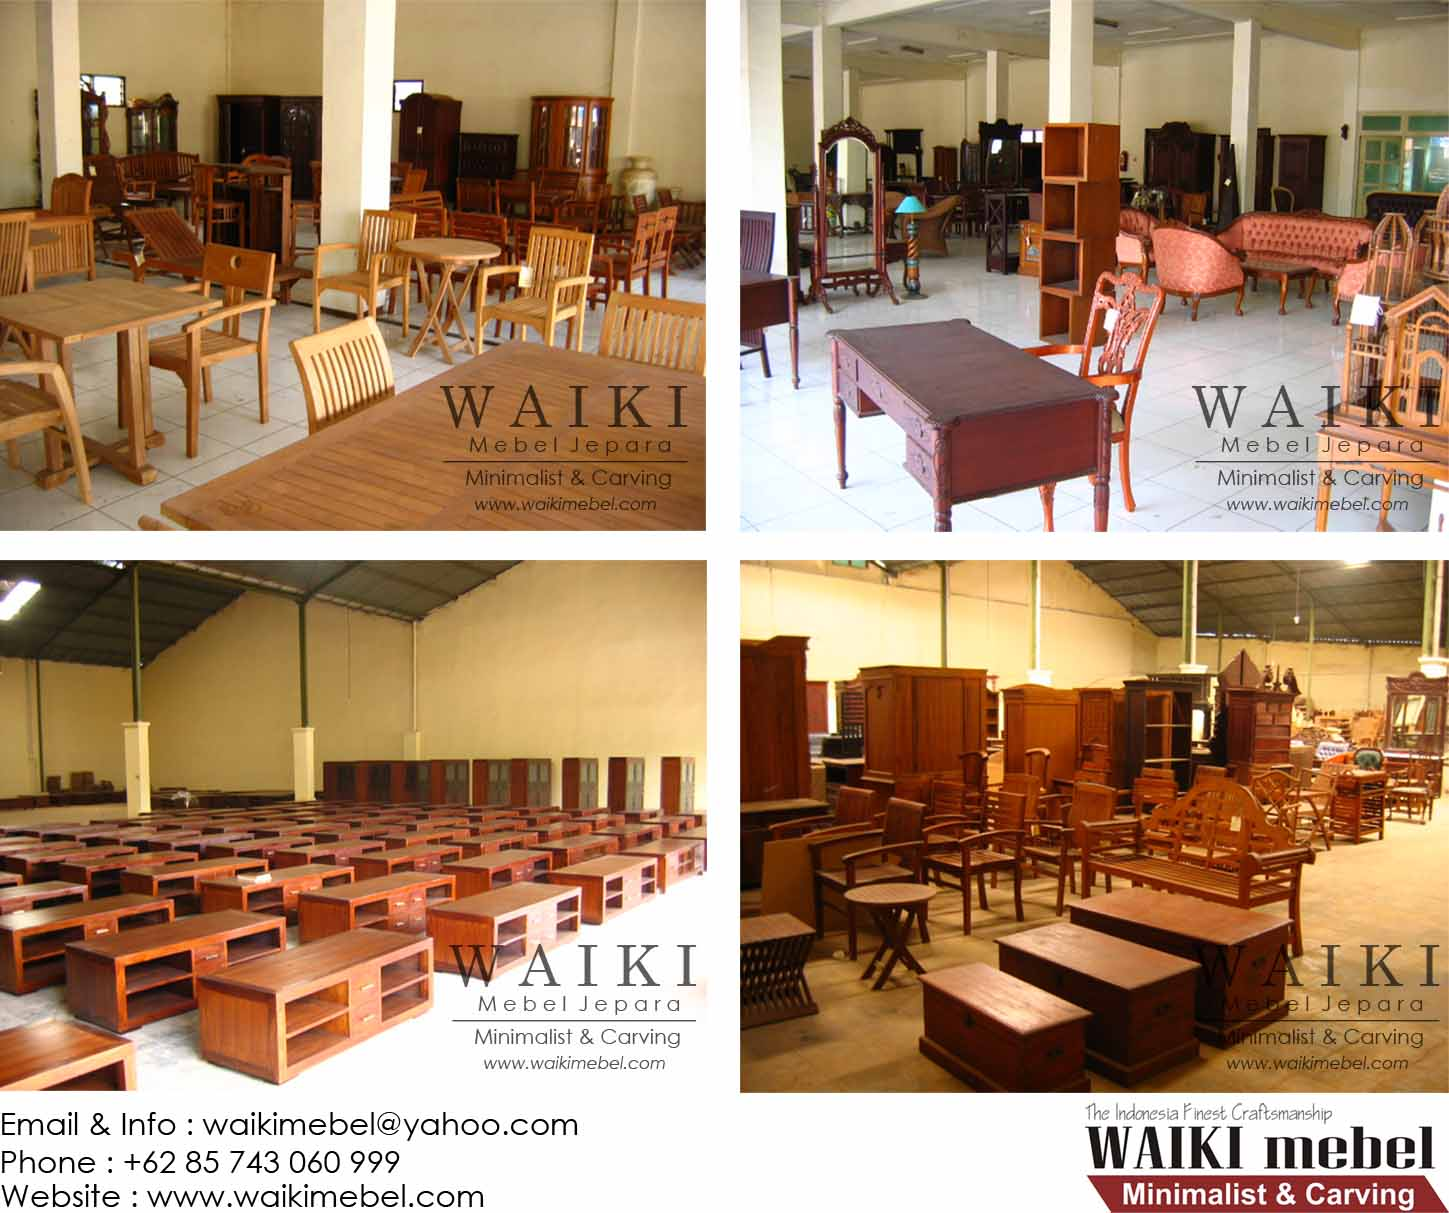 Waiki Mebel Jepara produsen furniture ukir dan minimalis kualitas ekspor Indonesia, waiki mebel jepara manufacturer, waiki mebel produsen furniture jepara,waiki mebel produsen furniture ukir minimalis jepara,teak furniture minimalist indonesia,teak indonesia furniture manufacturer,teak indoor minimalist jepara exporter,java teak indoor exporter manufacturer,supplier mebel cafe hotel restoran indonesia,produsen mebel proyek designer indonesia